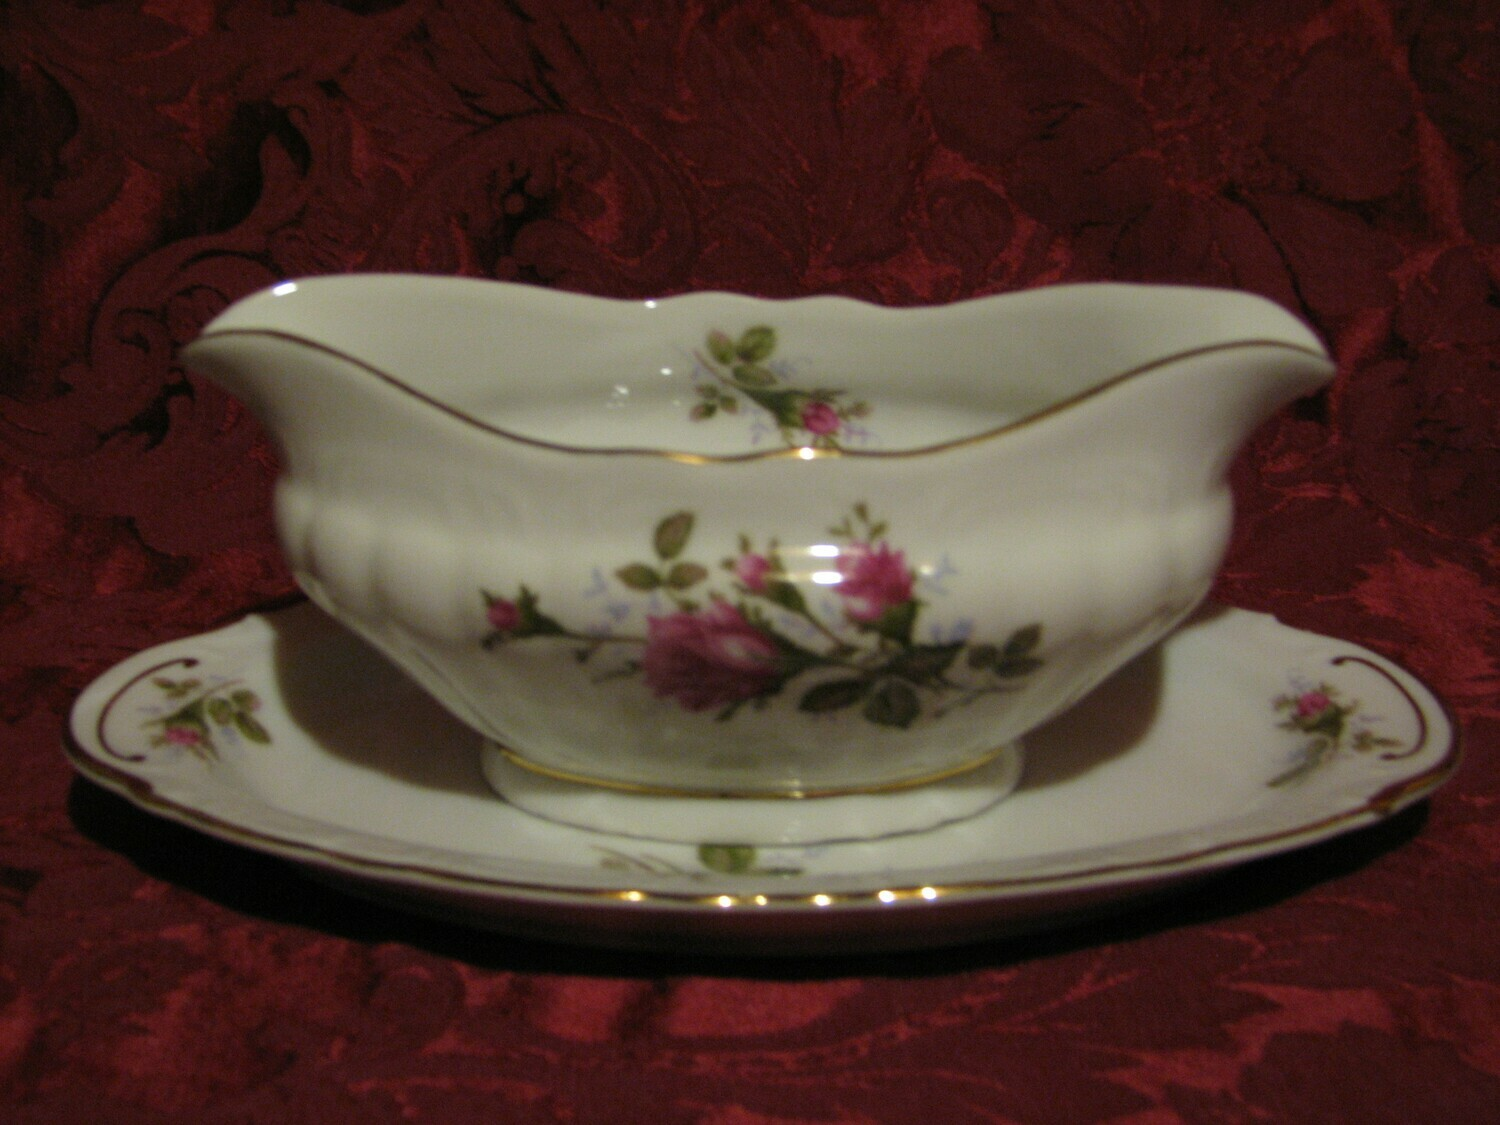 Fine China of Japan, Royal Rose, Gravy Boat W/Under Plate